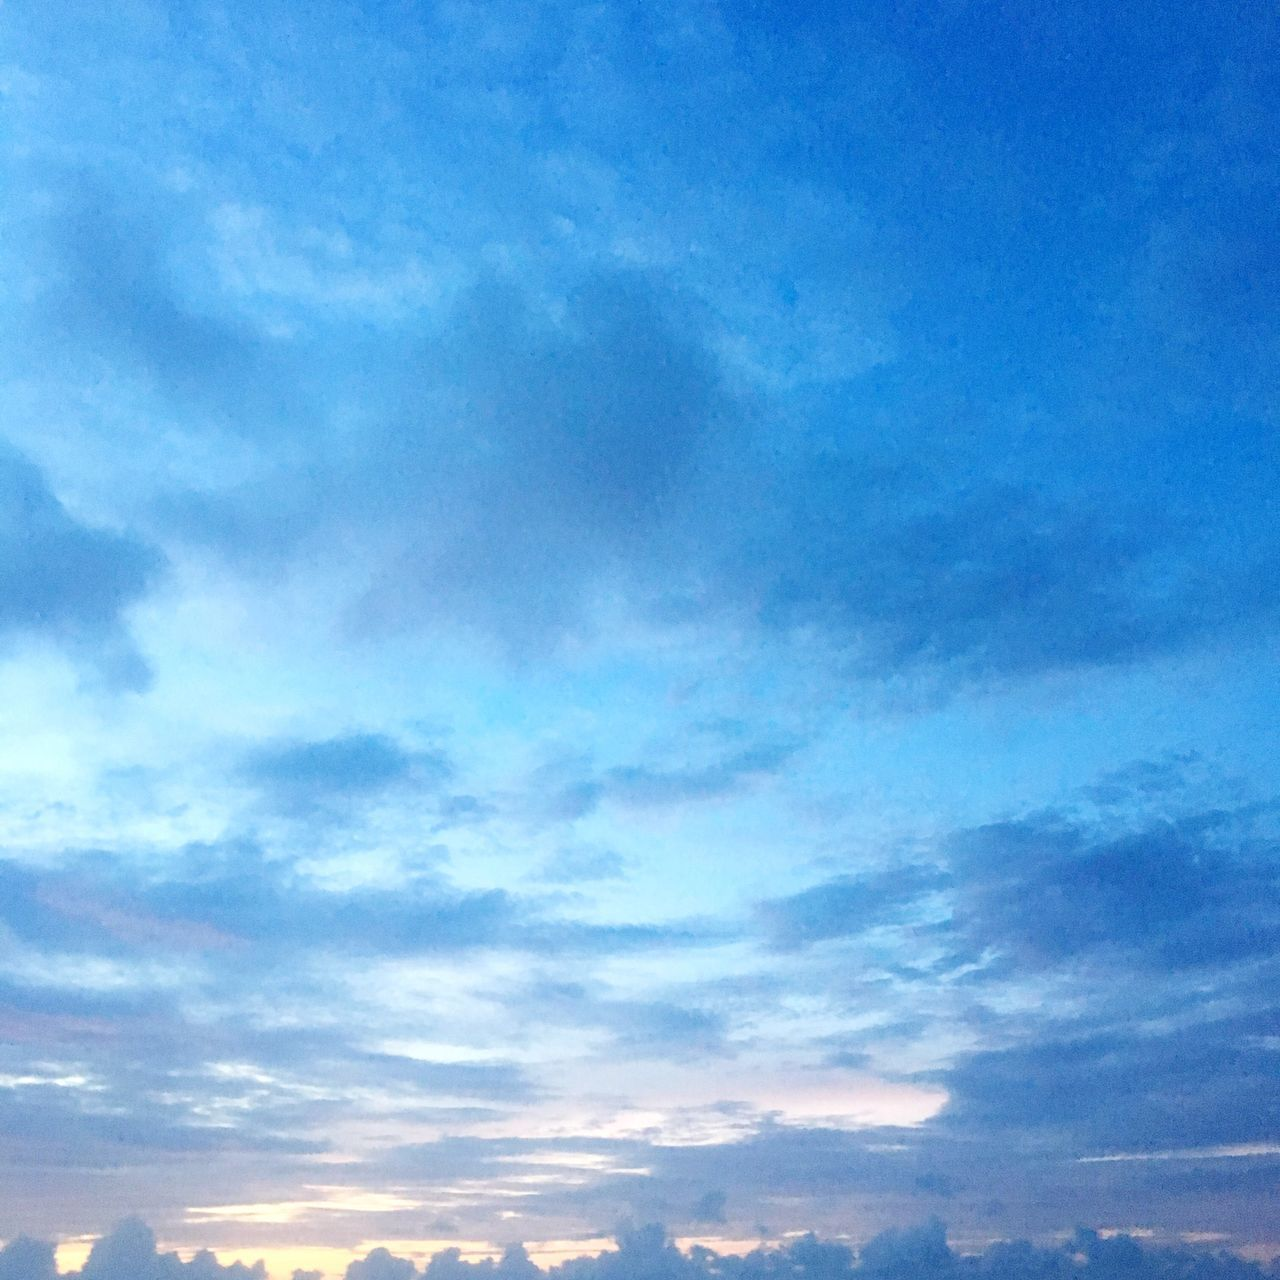 sky, low angle view, nature, cloud - sky, beauty in nature, blue, sky only, backgrounds, no people, outdoors, scenics, tranquility, day